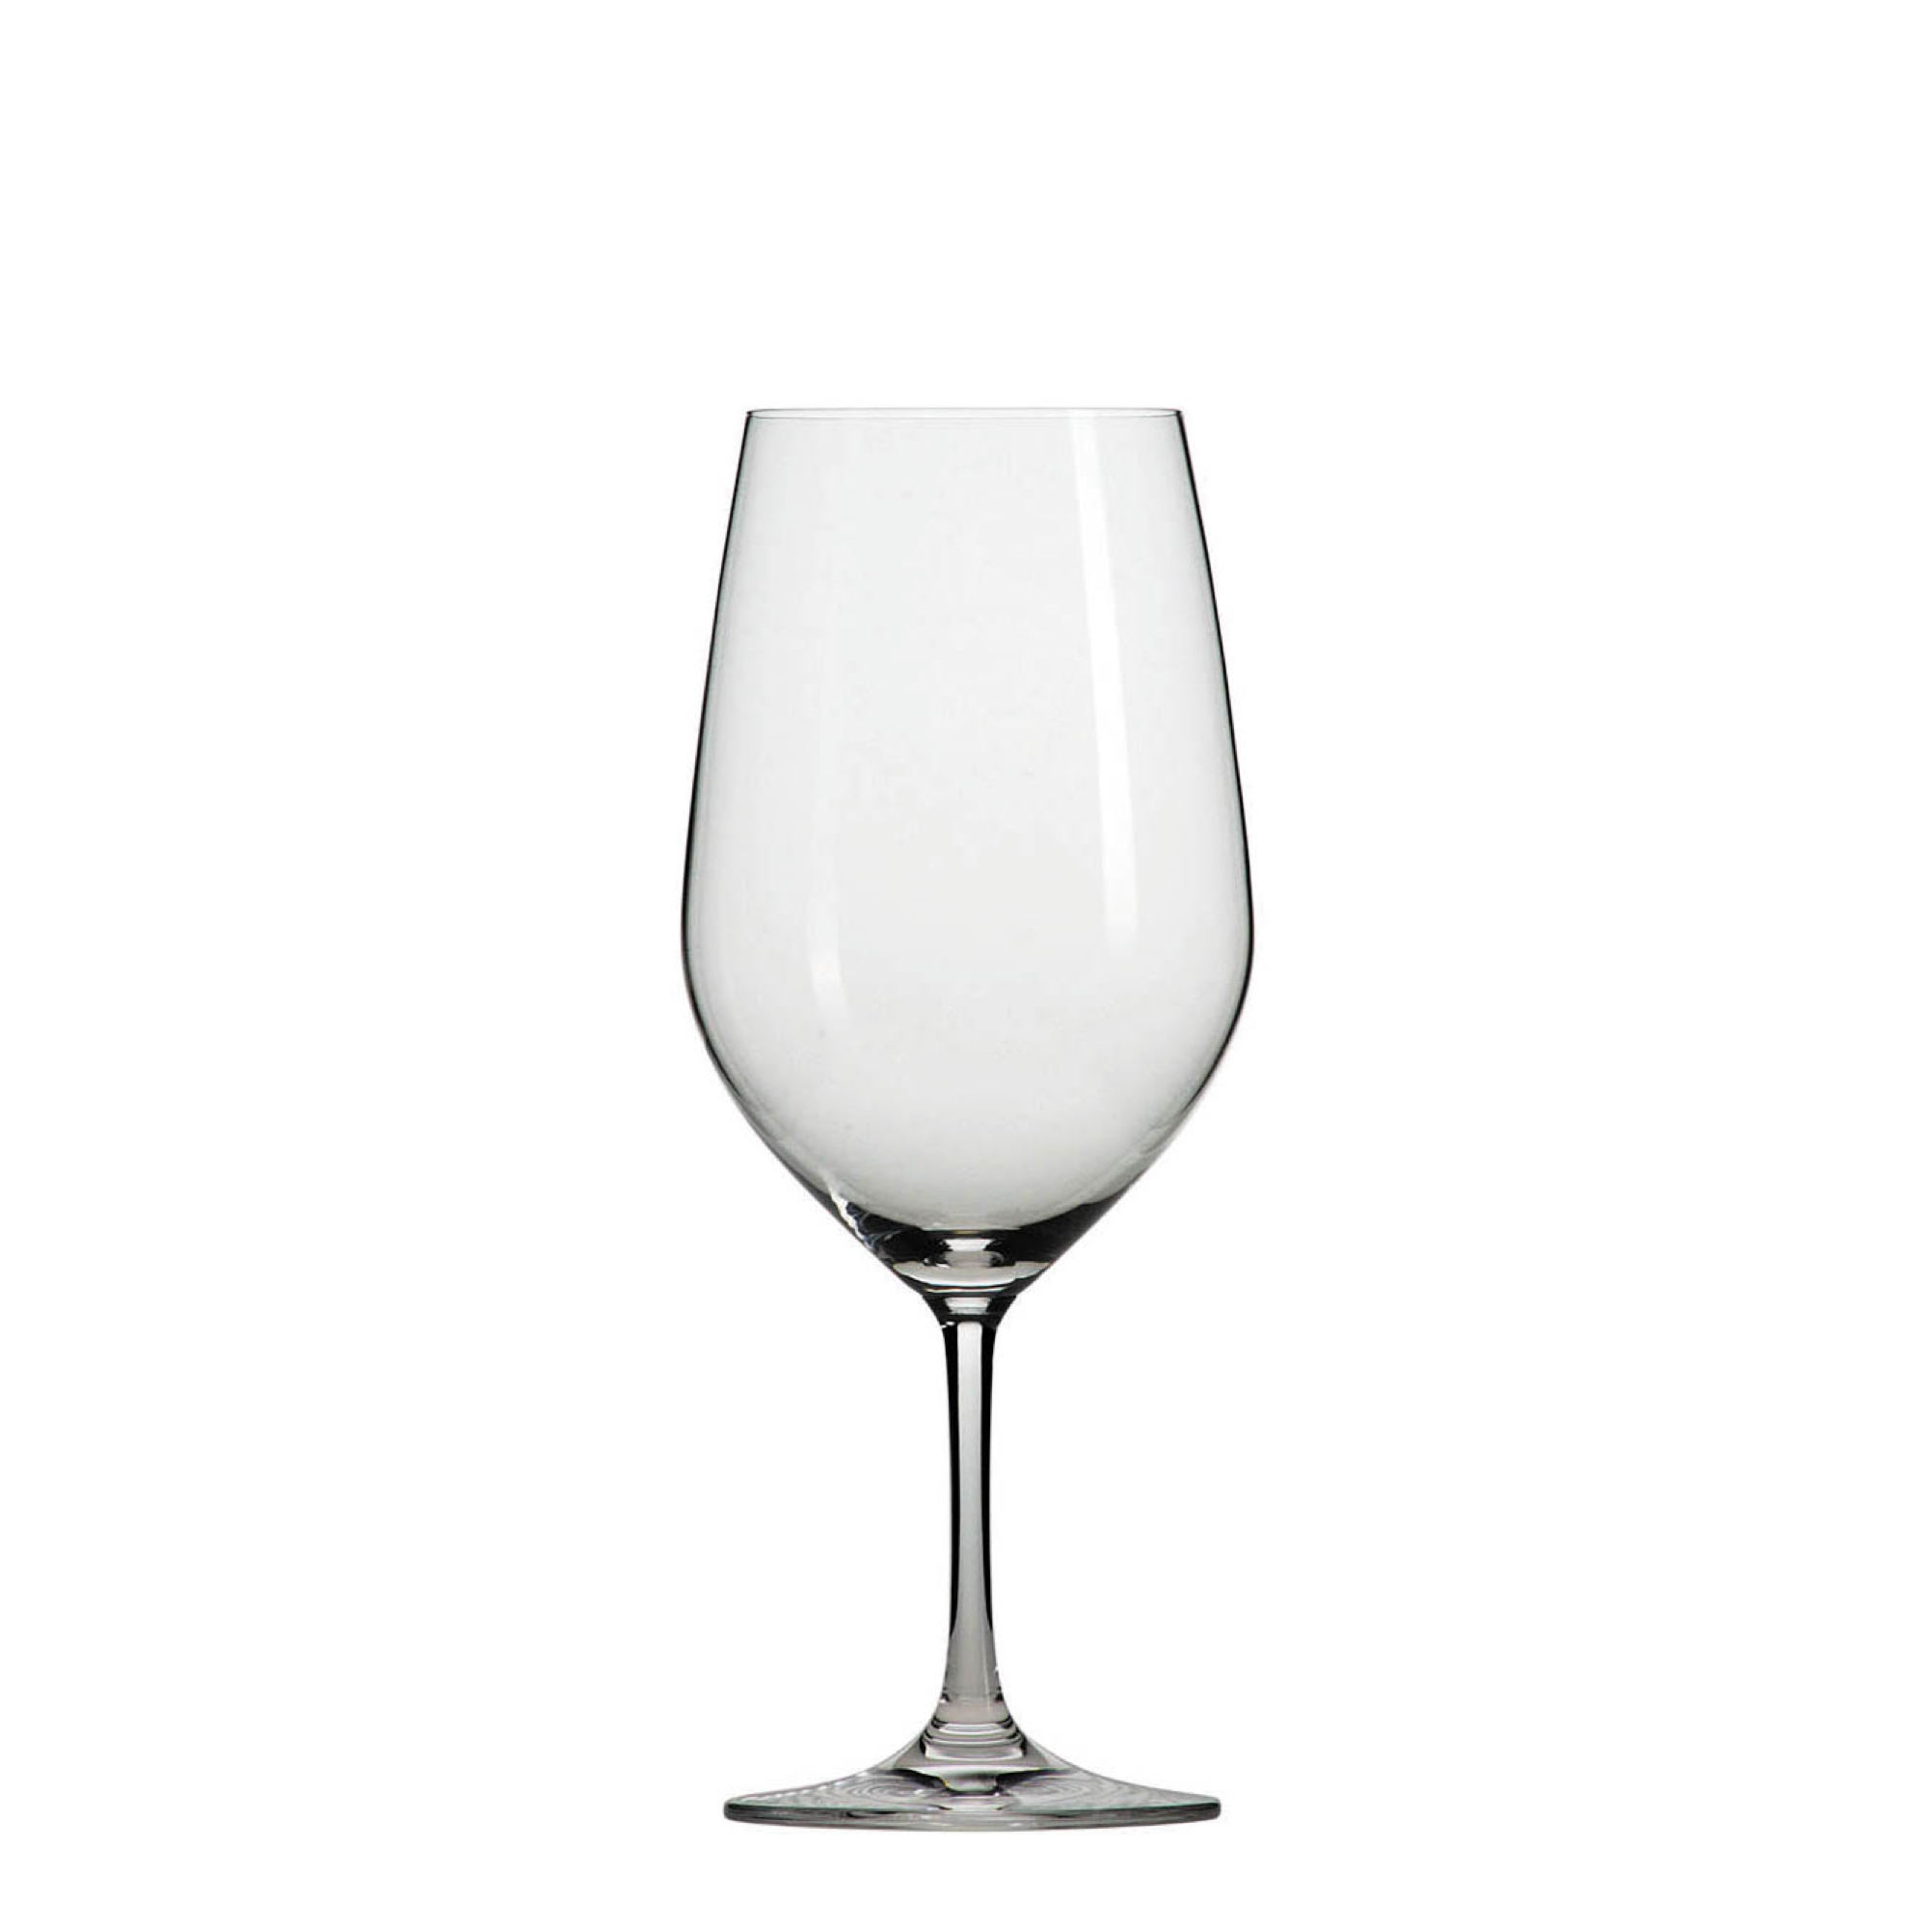 Schott Zwiesel Wine Glasses | Schott Glass Company | Schott Zwiesel Stemless Wine Glasses